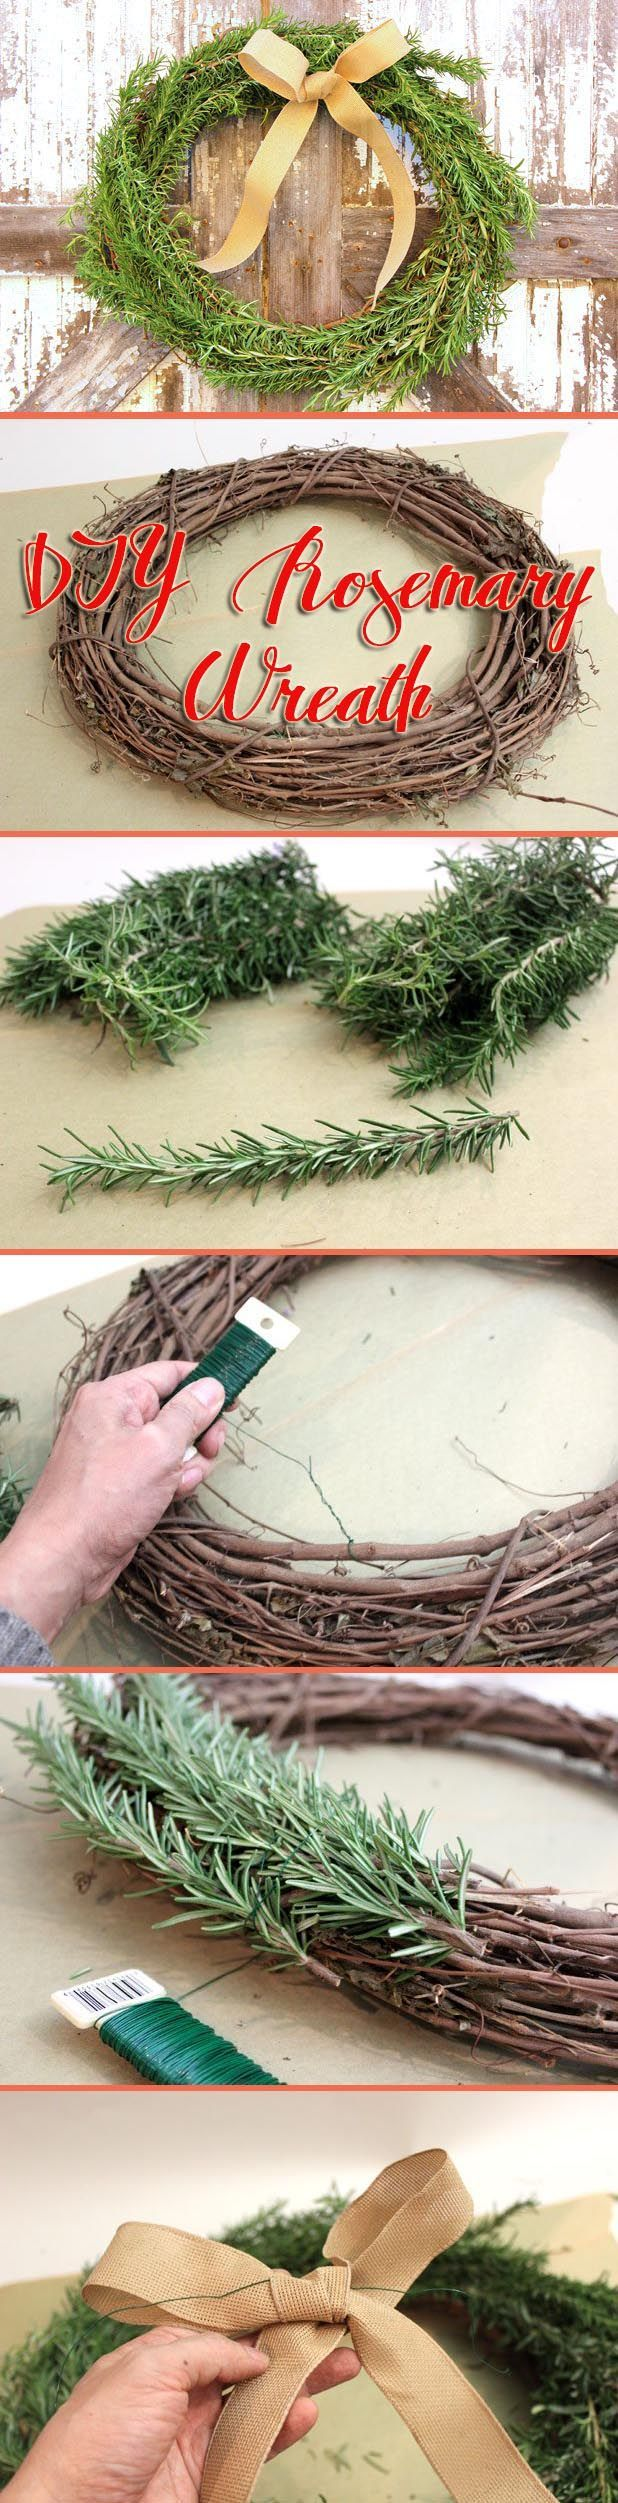 How to make a fresh christmas wreath - How To Make A Wreath From Rosemary Fresh Christmas